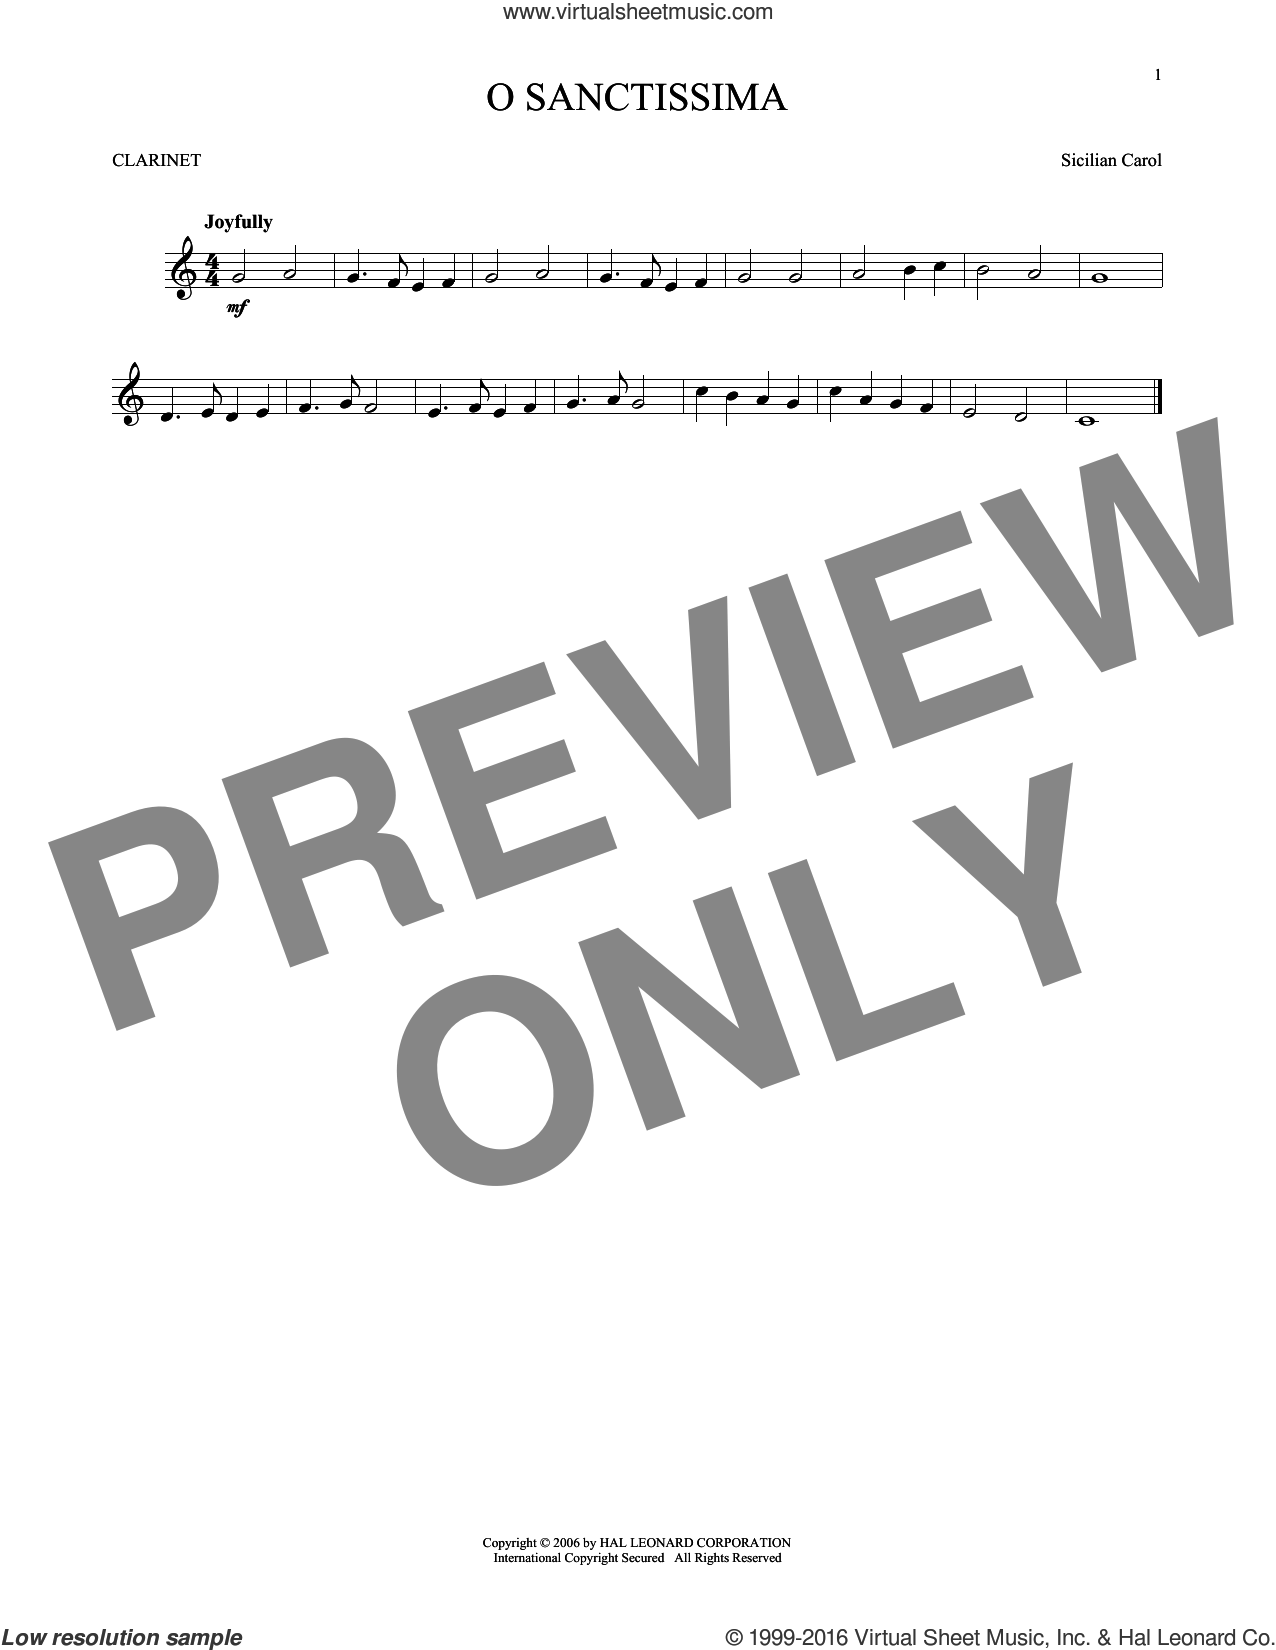 O Sanctissima sheet music for clarinet solo. Score Image Preview.